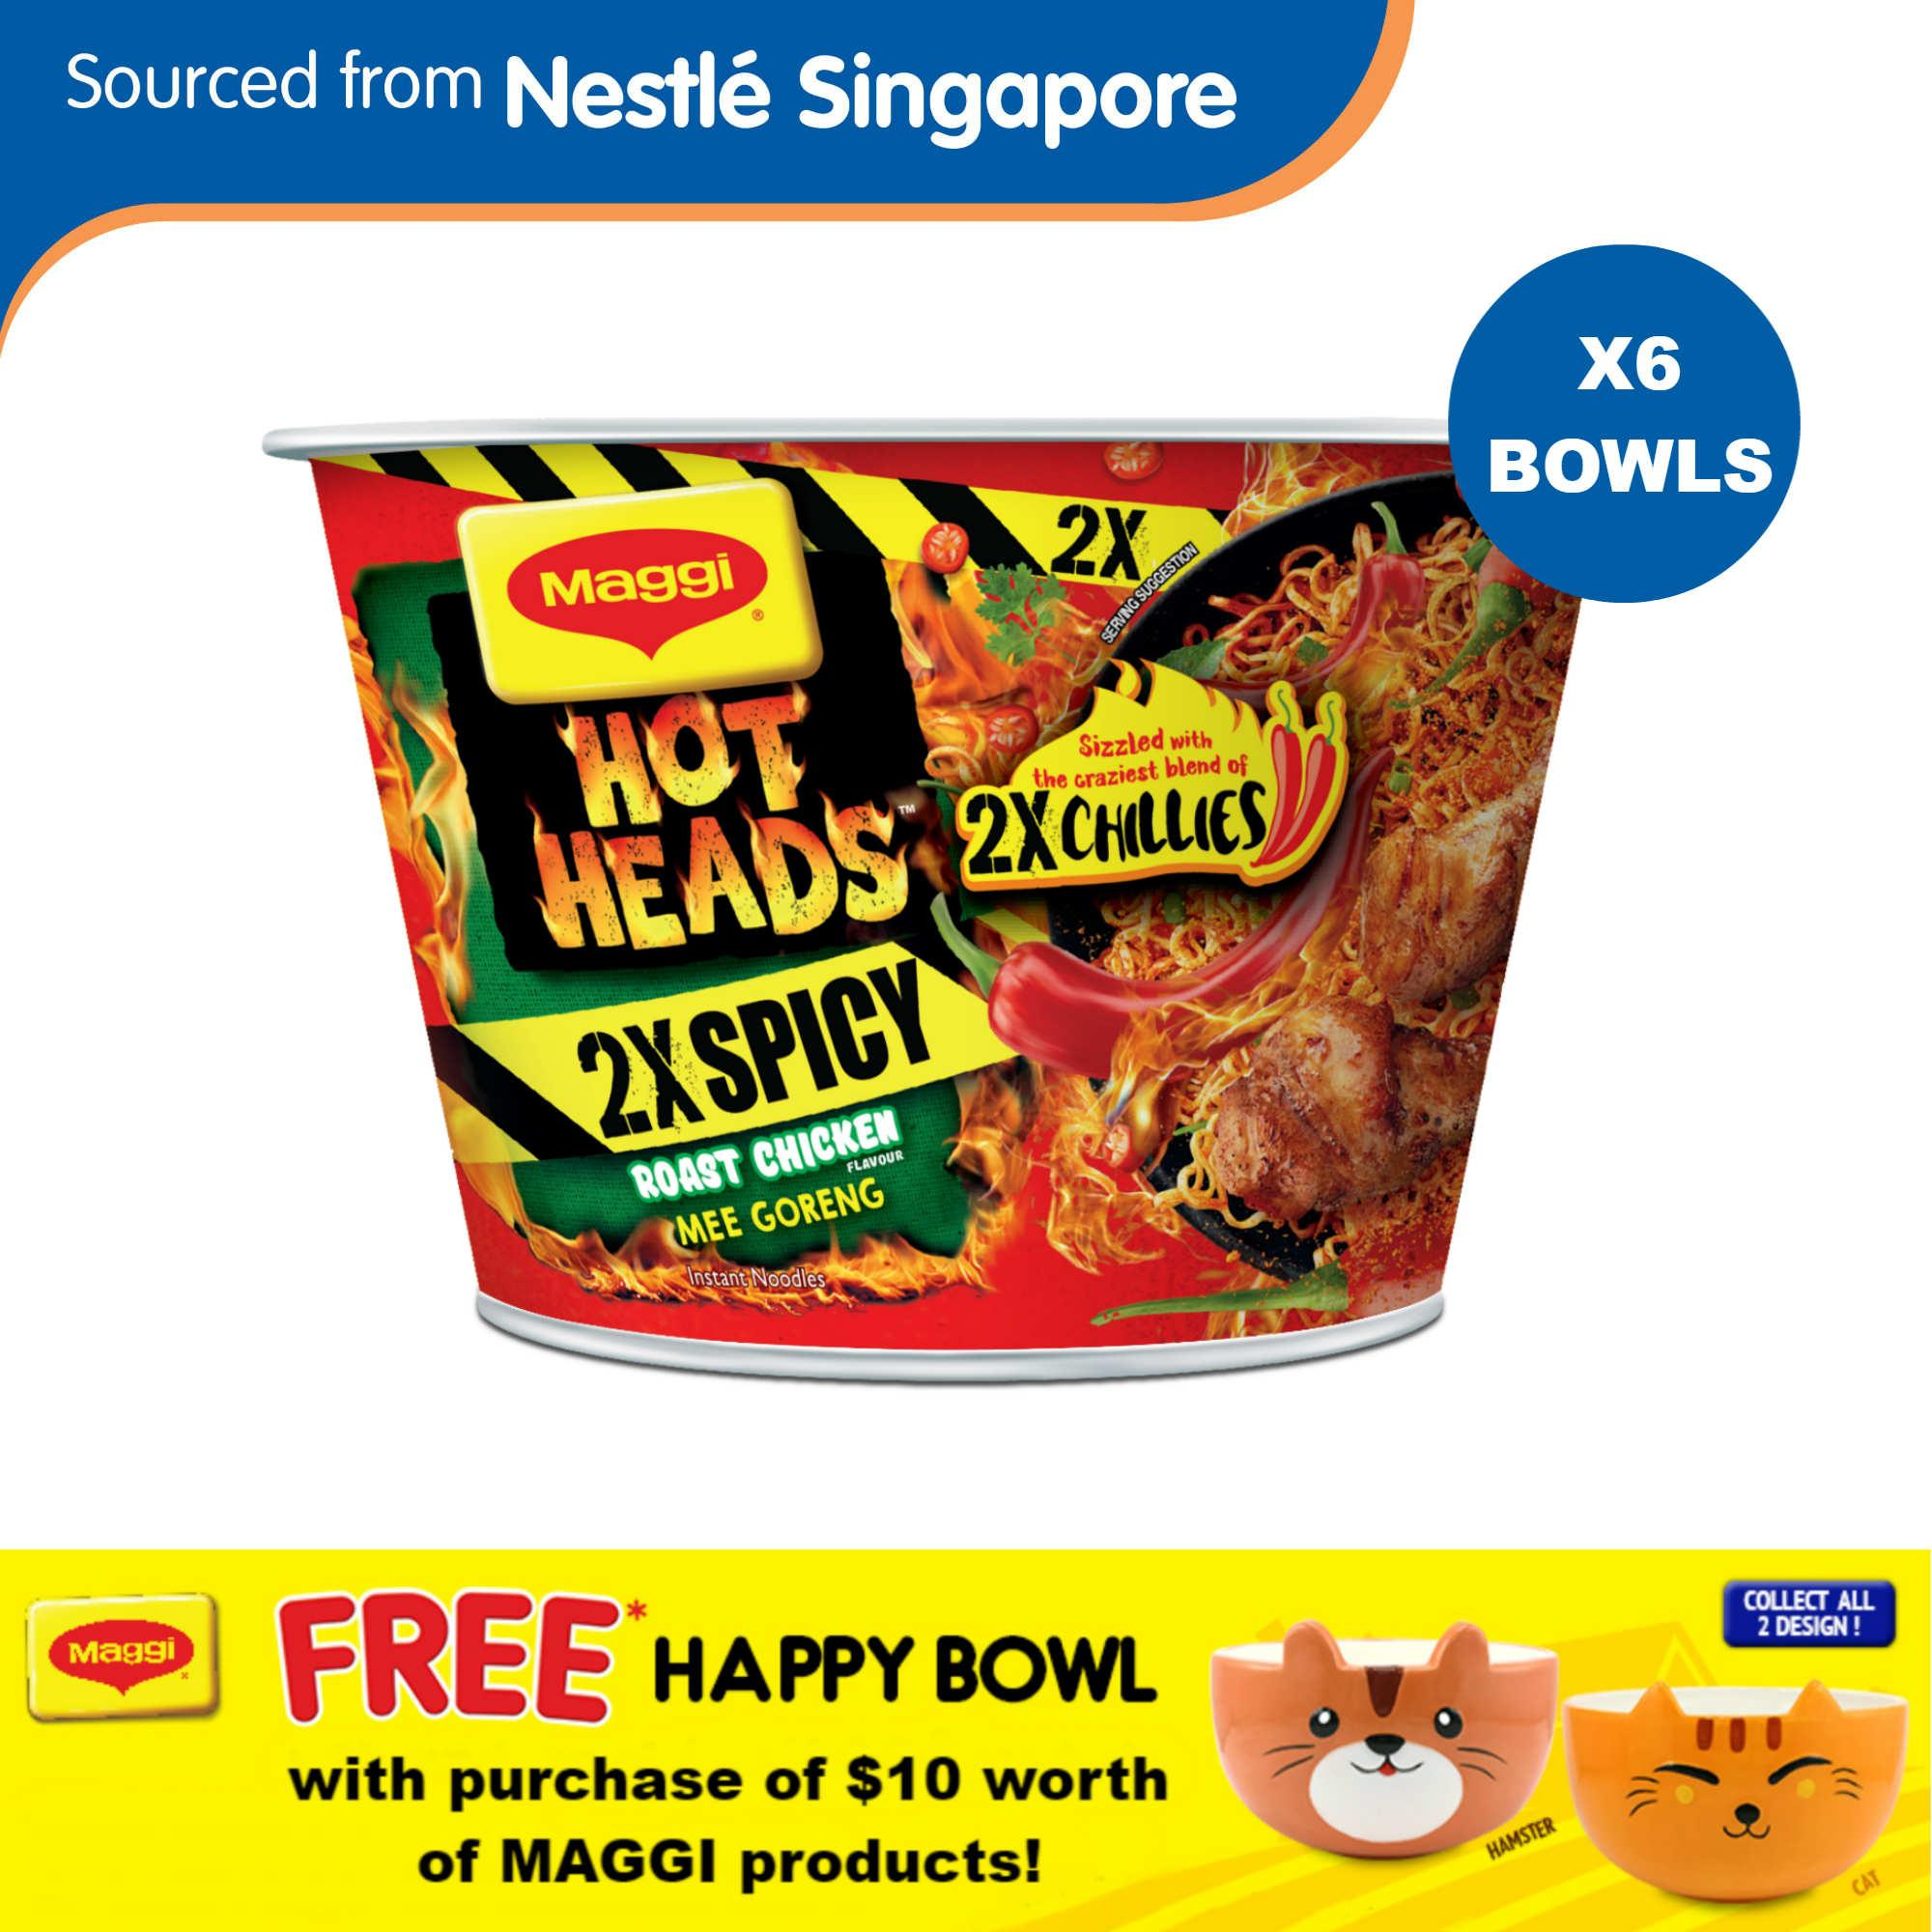 (bundle Of 6) Maggi Hot Heads Bowl Noodles - 2x Spicy Roast Chicken + Free Maggi Happy Bowl (random) By Nestle Official Store